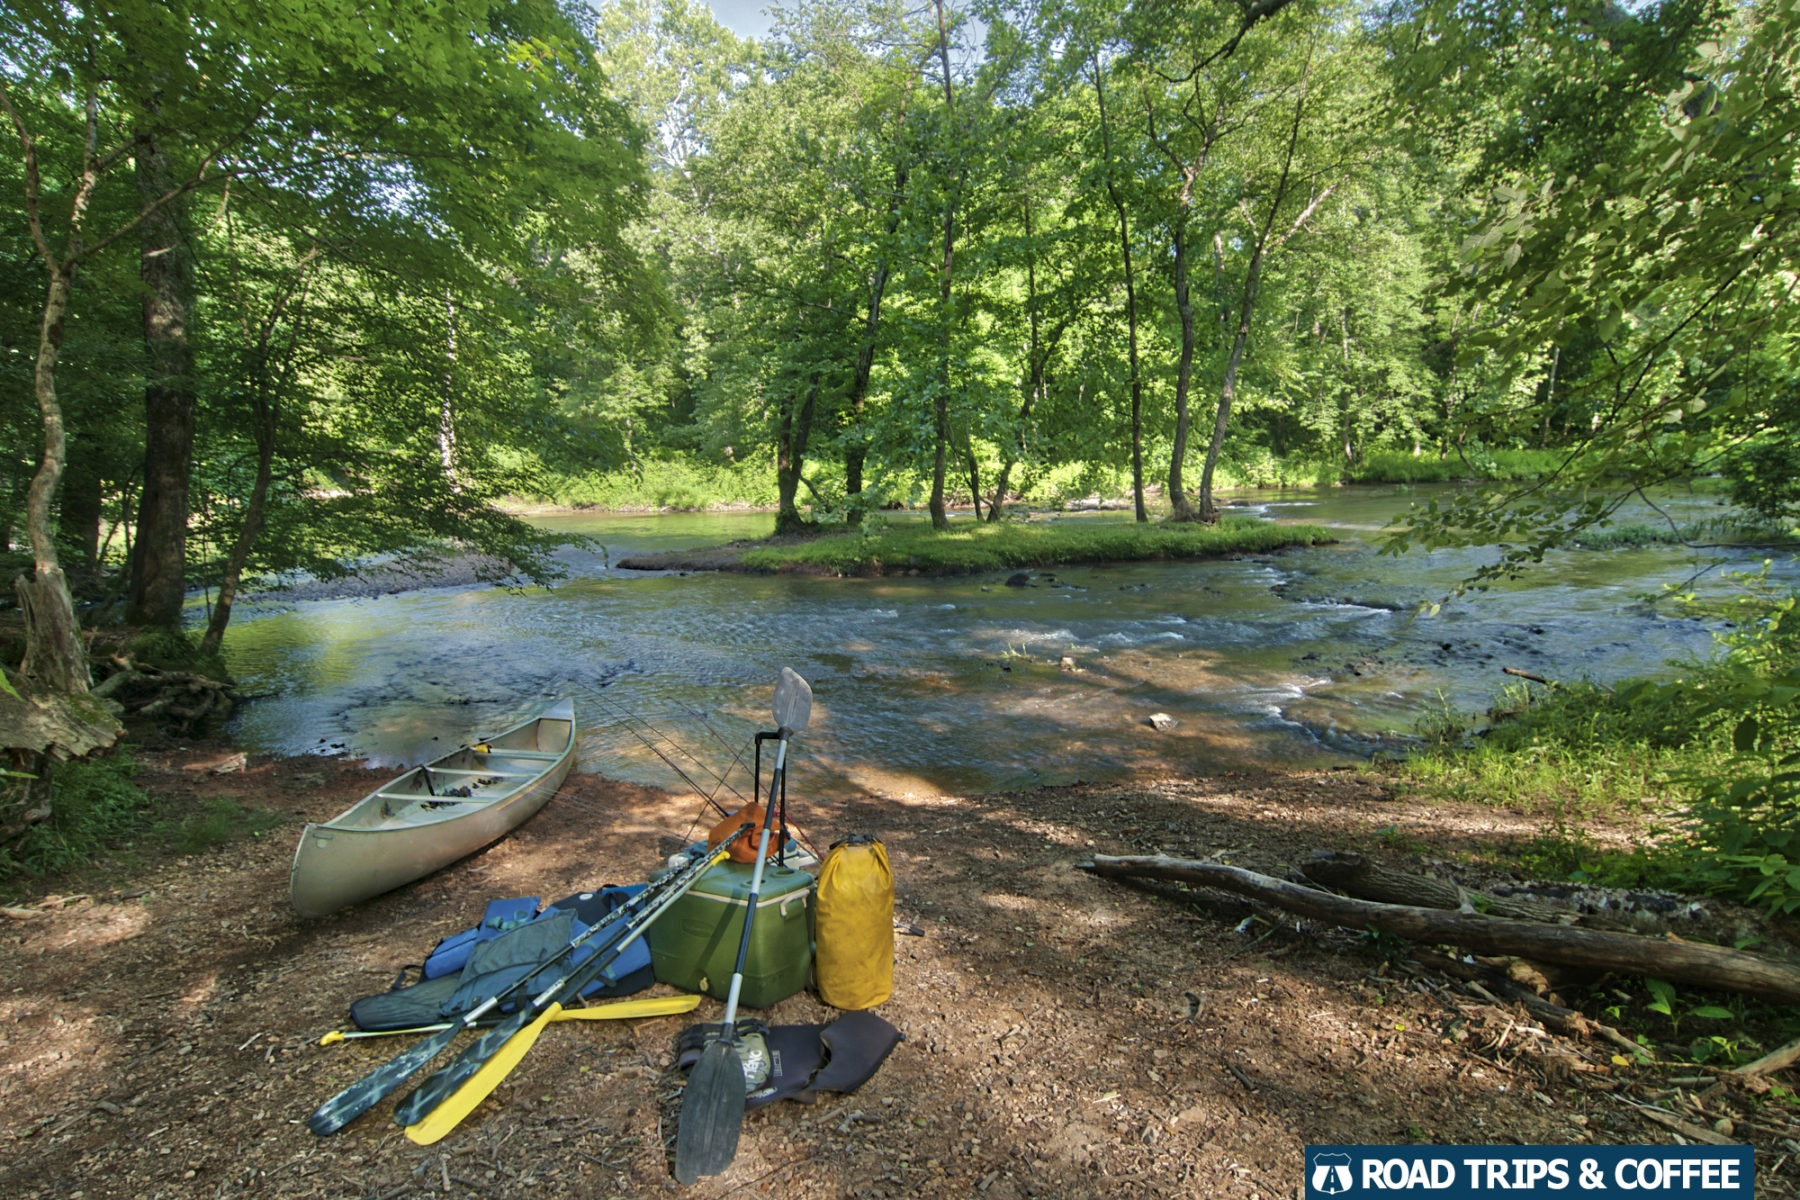 A canoe with paddles, fishing rods, and a cooler ready to get into the river at Metal Ford on the Natchez Trace Parkway in Tennessee